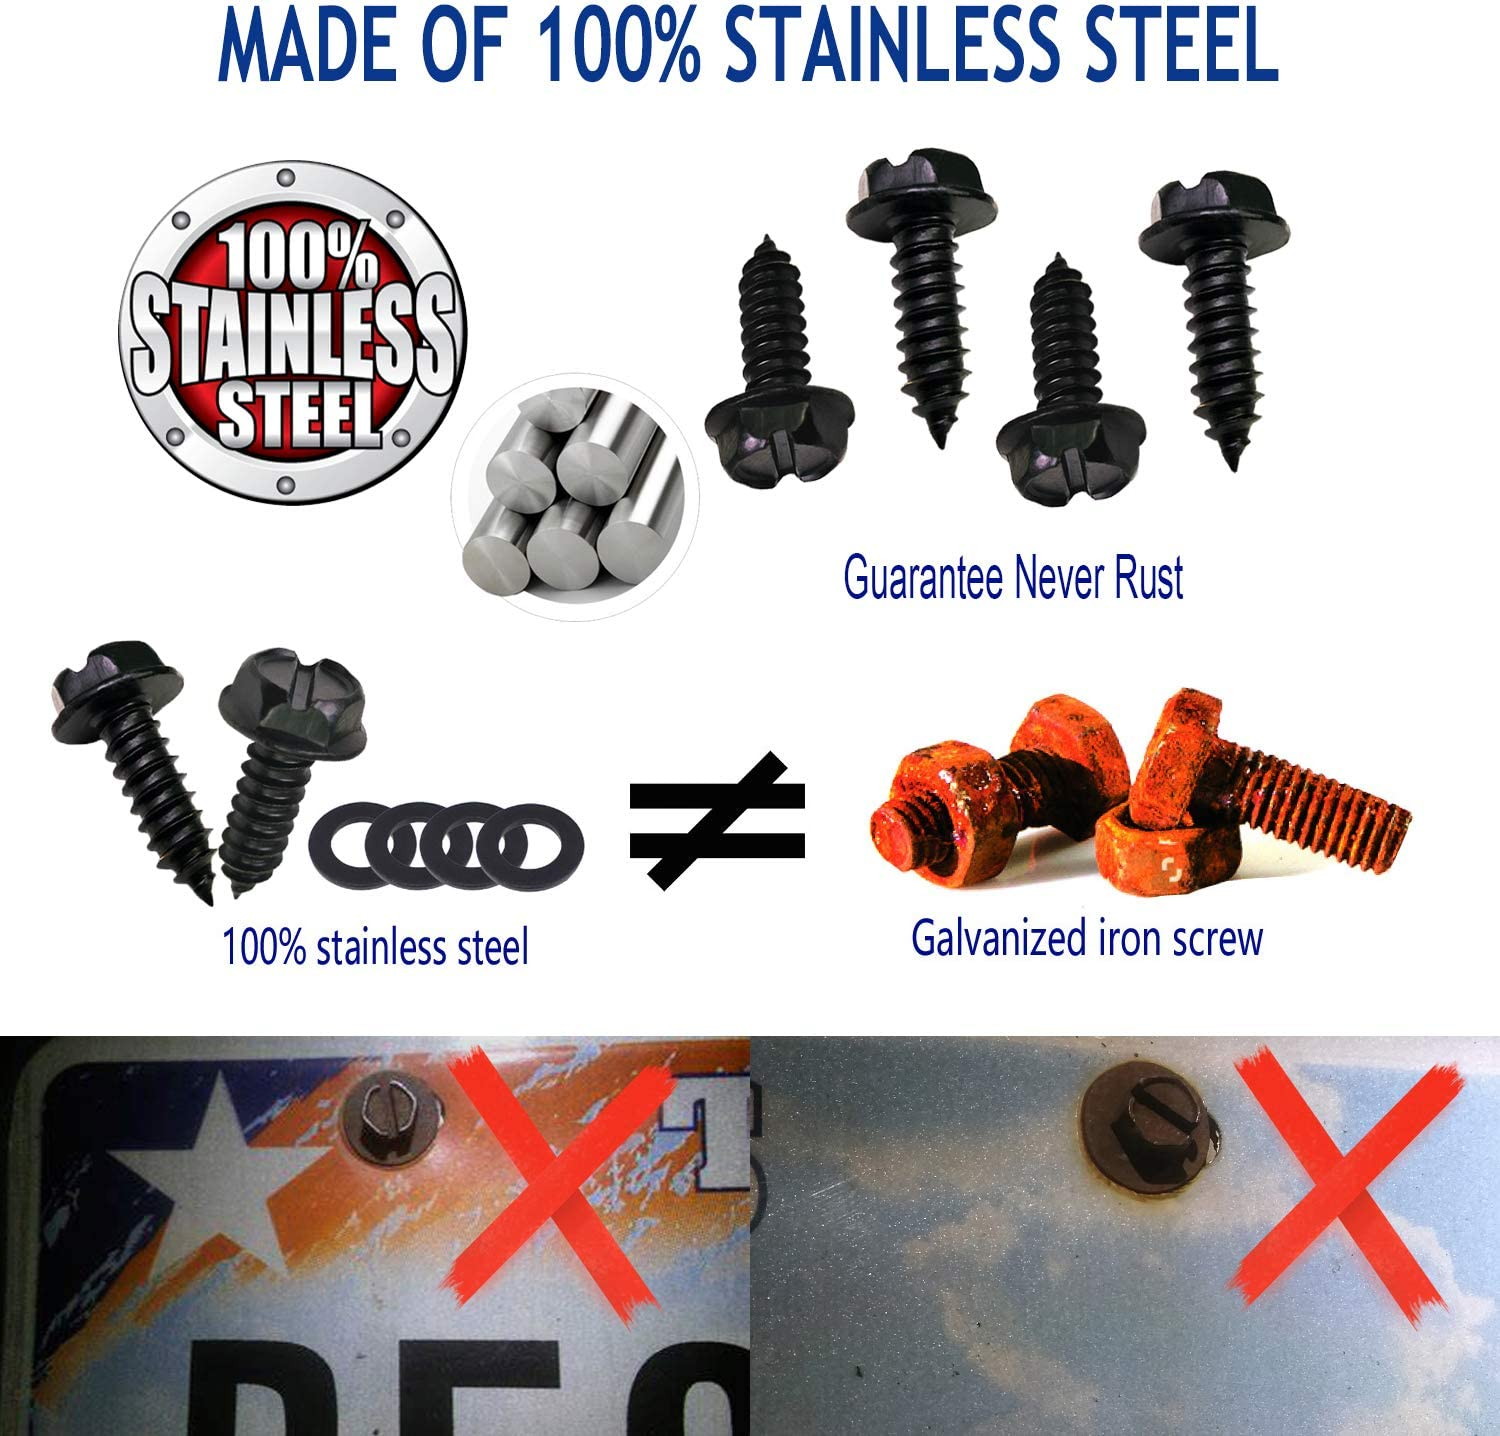 Black License Plate Screws Stainless Steel Lock Screws Fastener Kit Rust Proof Screw Caps Covers,for Front or Rear Cars and Truck Plate M6X20mm Metric 1//4 Self-Tapping Car Tag Mounting Hardware